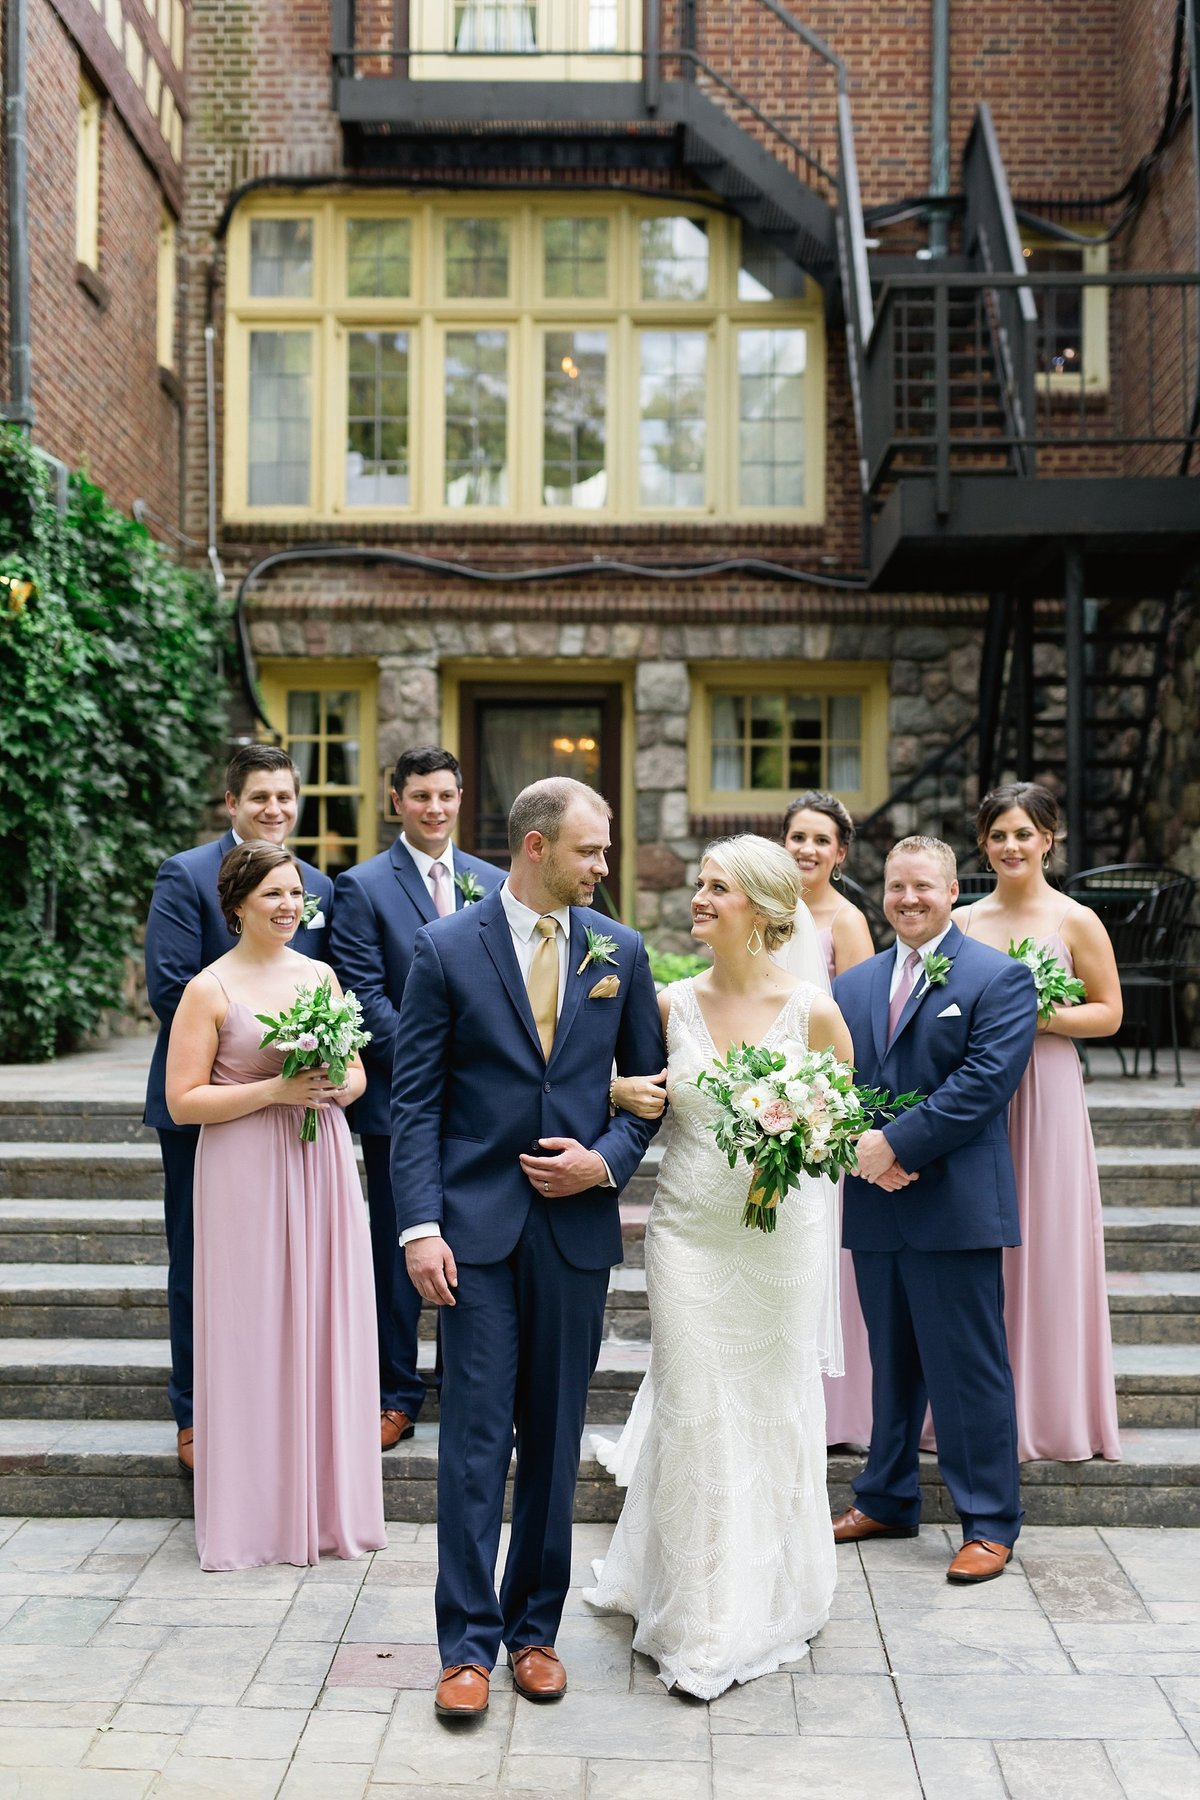 Julie-Barry-English-Inn-Summer-Garden-Wedding-Michigan-Breanne-Rochelle-Photography70